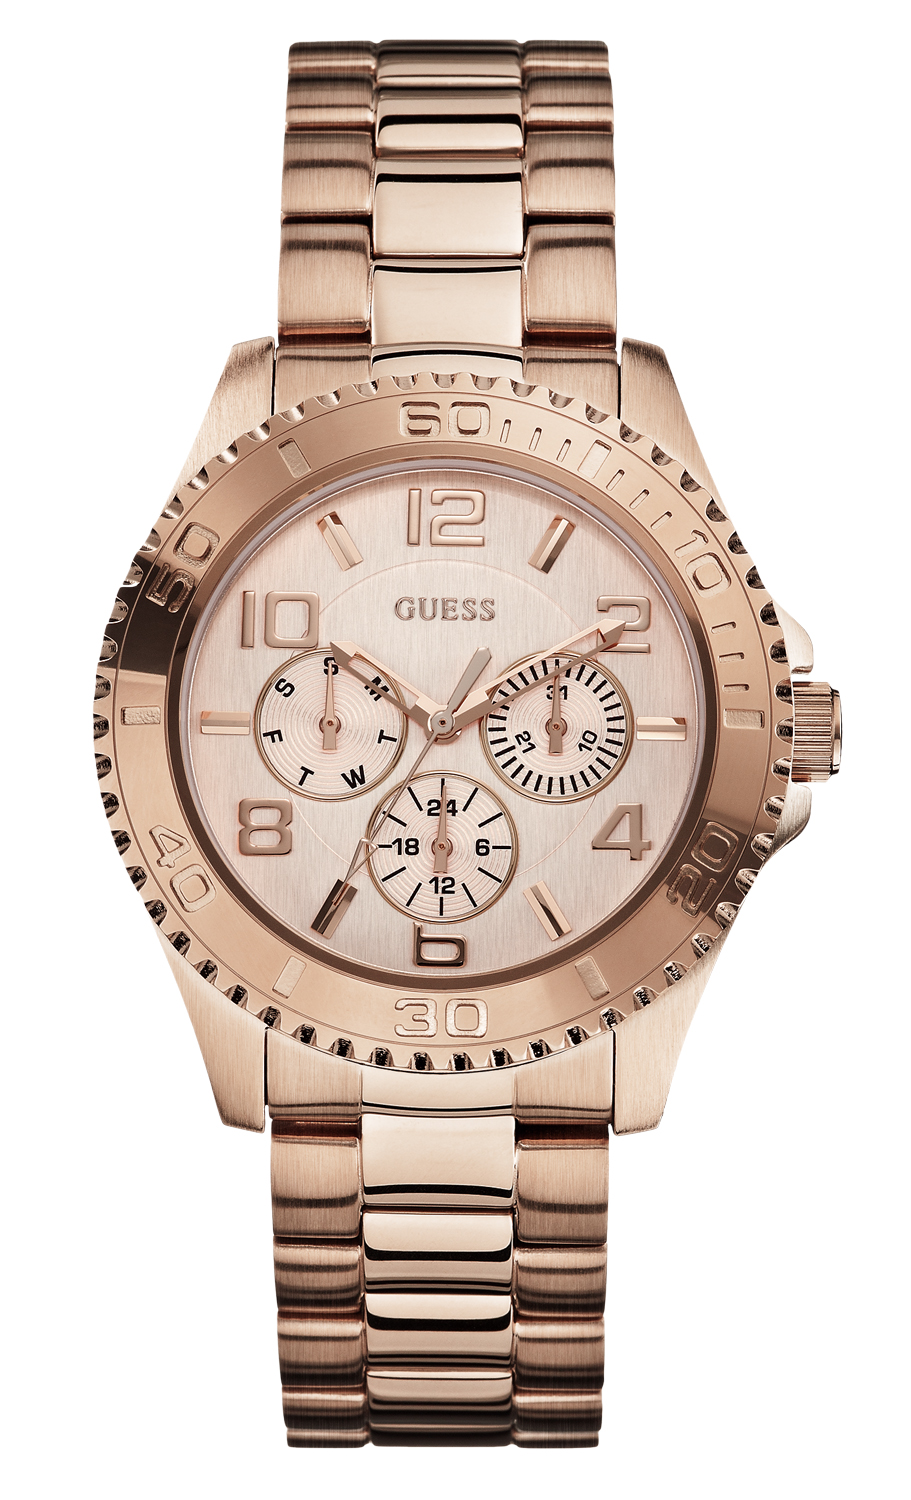 storre-dameur-i-rodguld-fra-guess-watches-guess-bff-rosegold-w0231l4